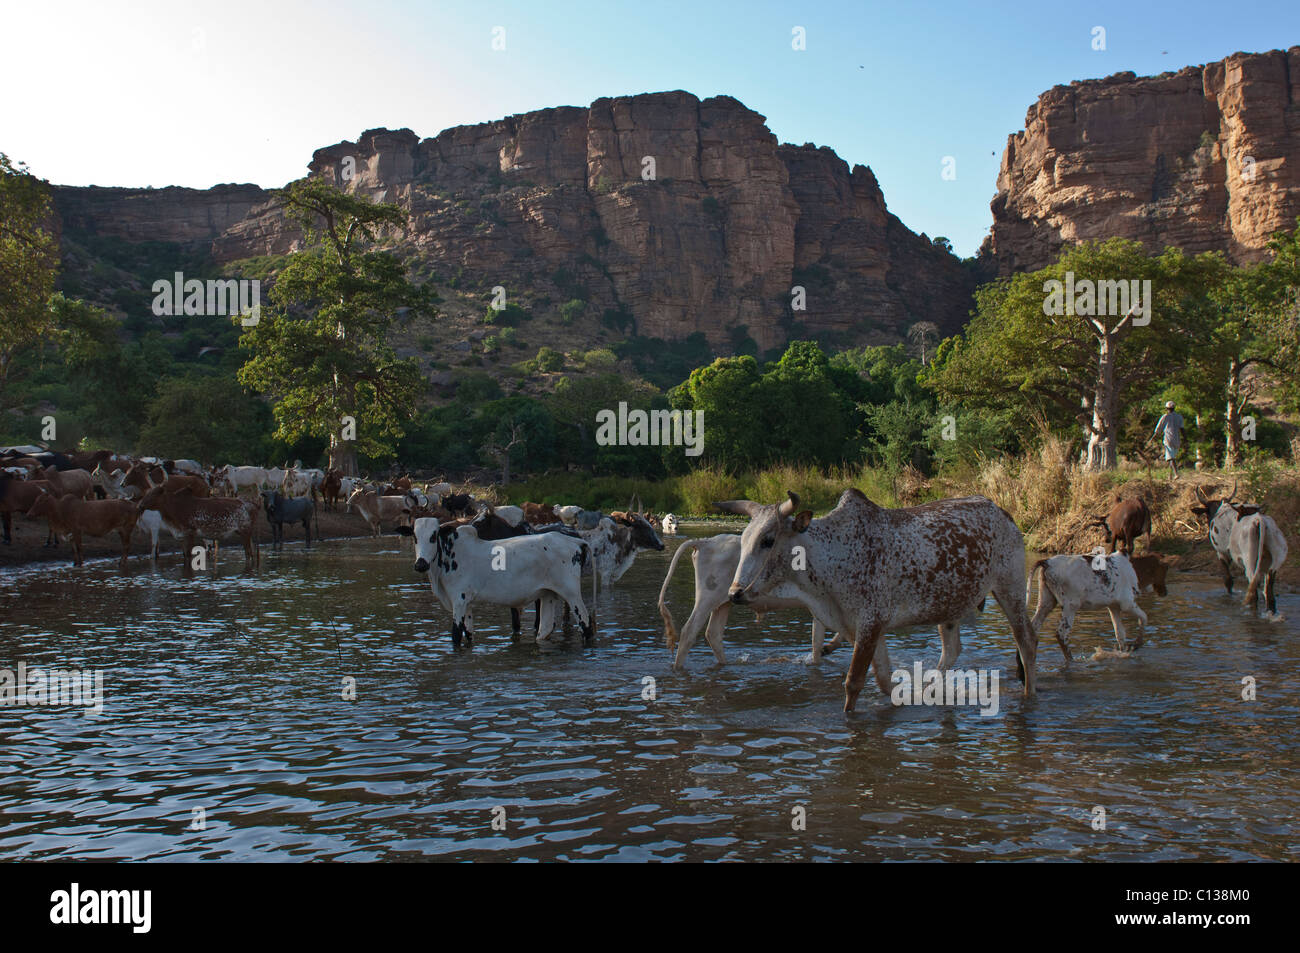 Cows drinking from the remaining water of a dried up river near Nombori village. Pays Dogon, Mali. - Stock Image